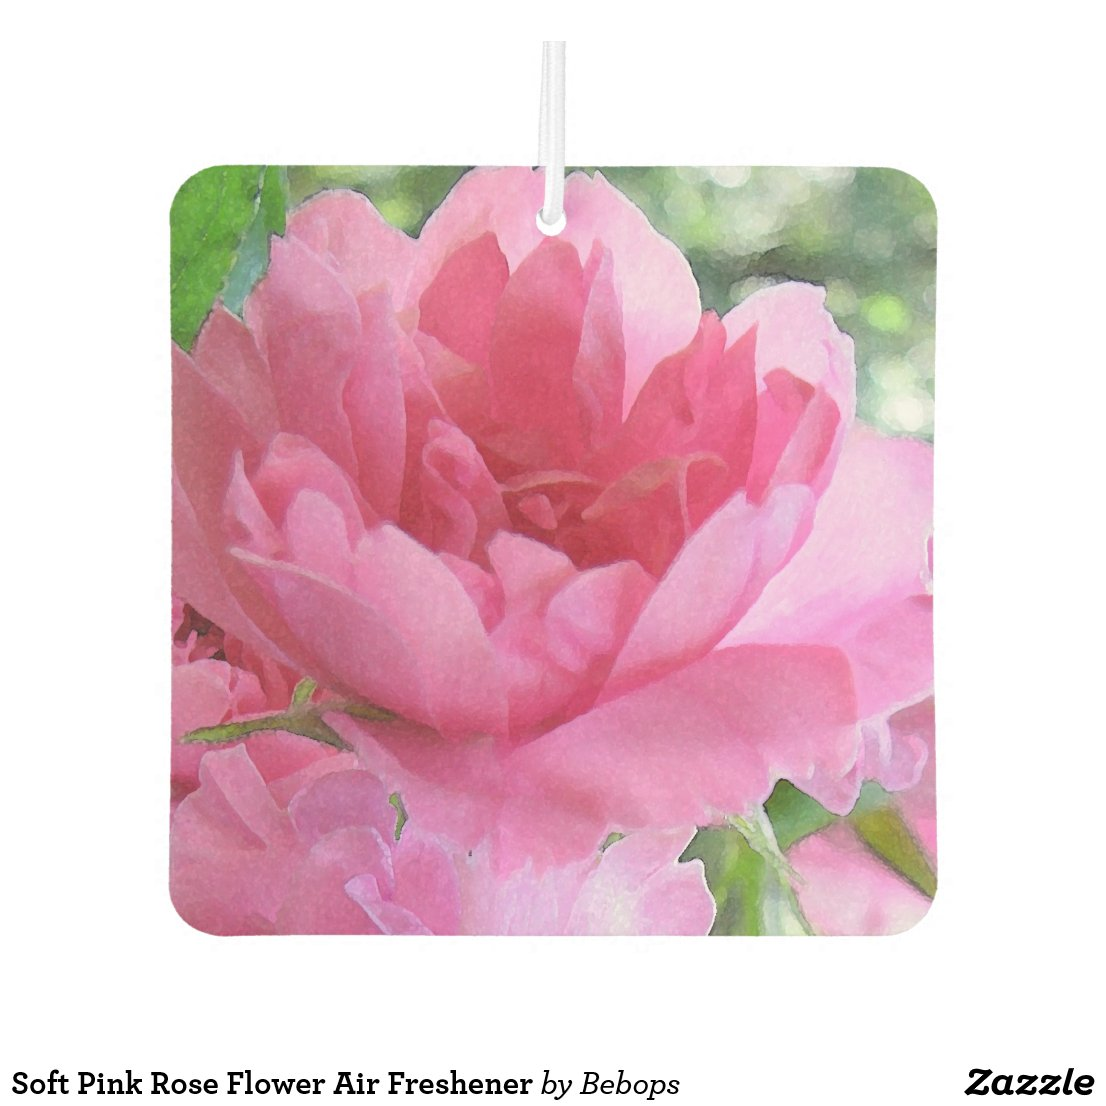 Soft Pink Rose Flower Air Freshener